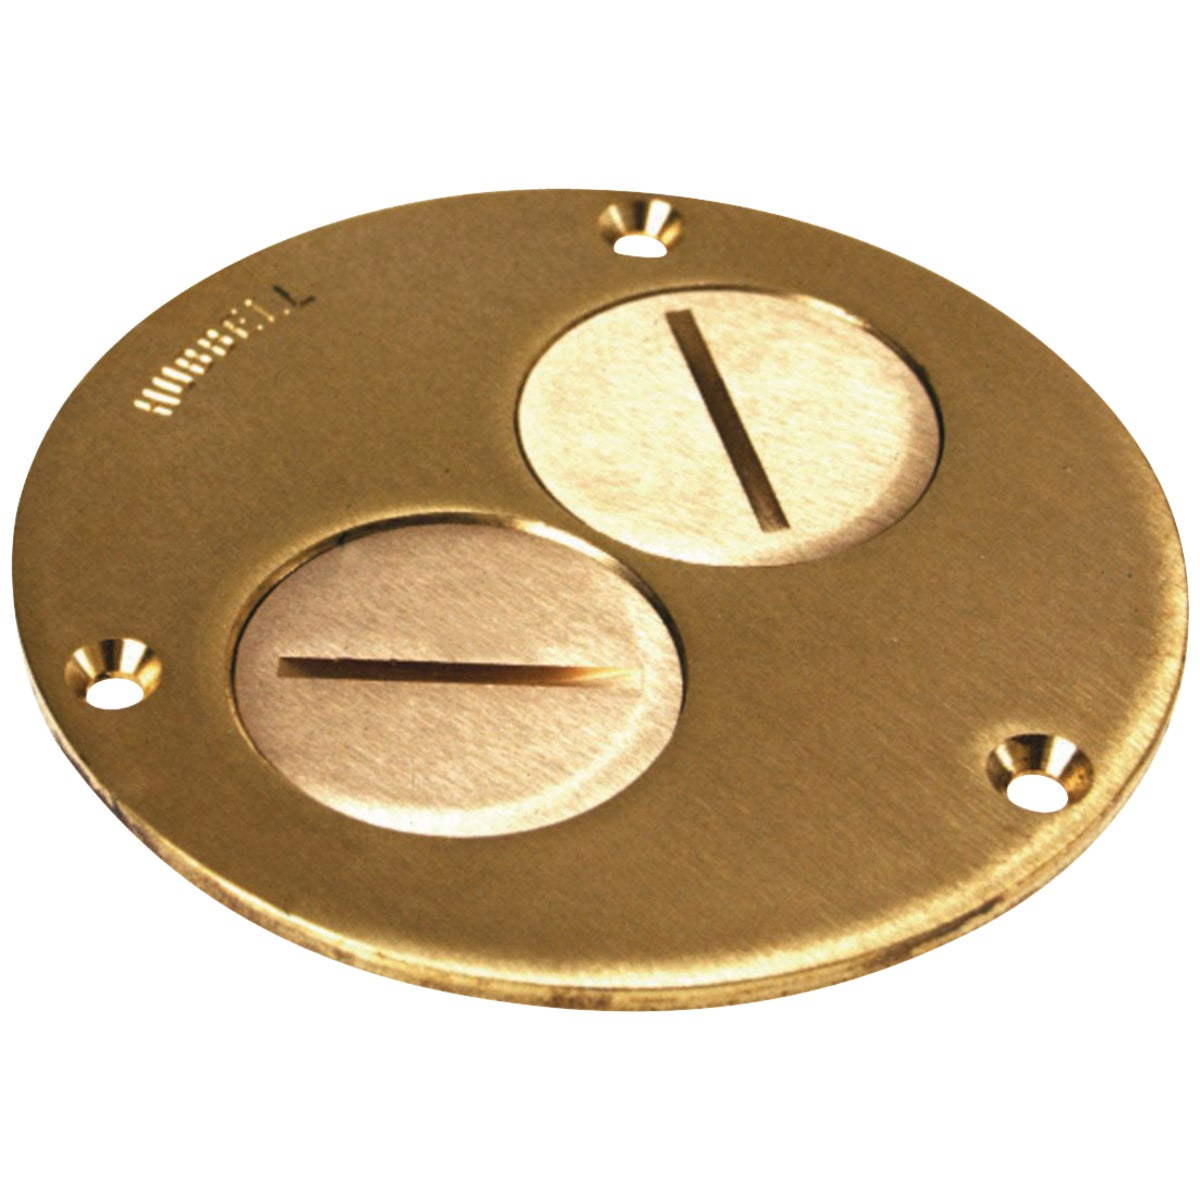 BRASS OUTLET COVER - P60DU by Thomas & Betts